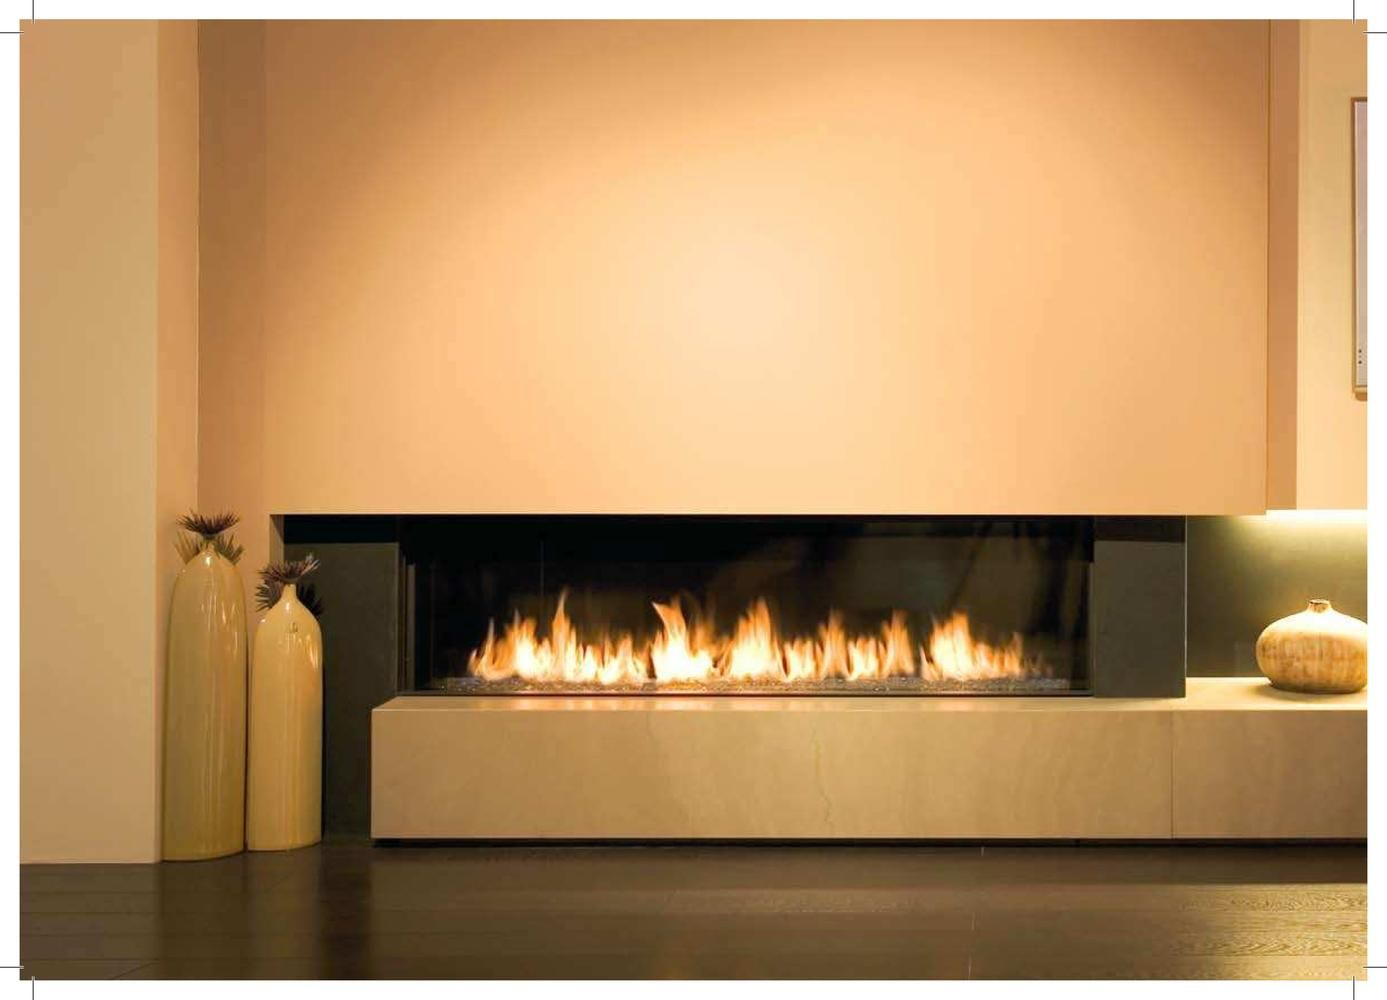 a long gas fireplace | Design Gas or Ethanol Fireplace | Favorite ...